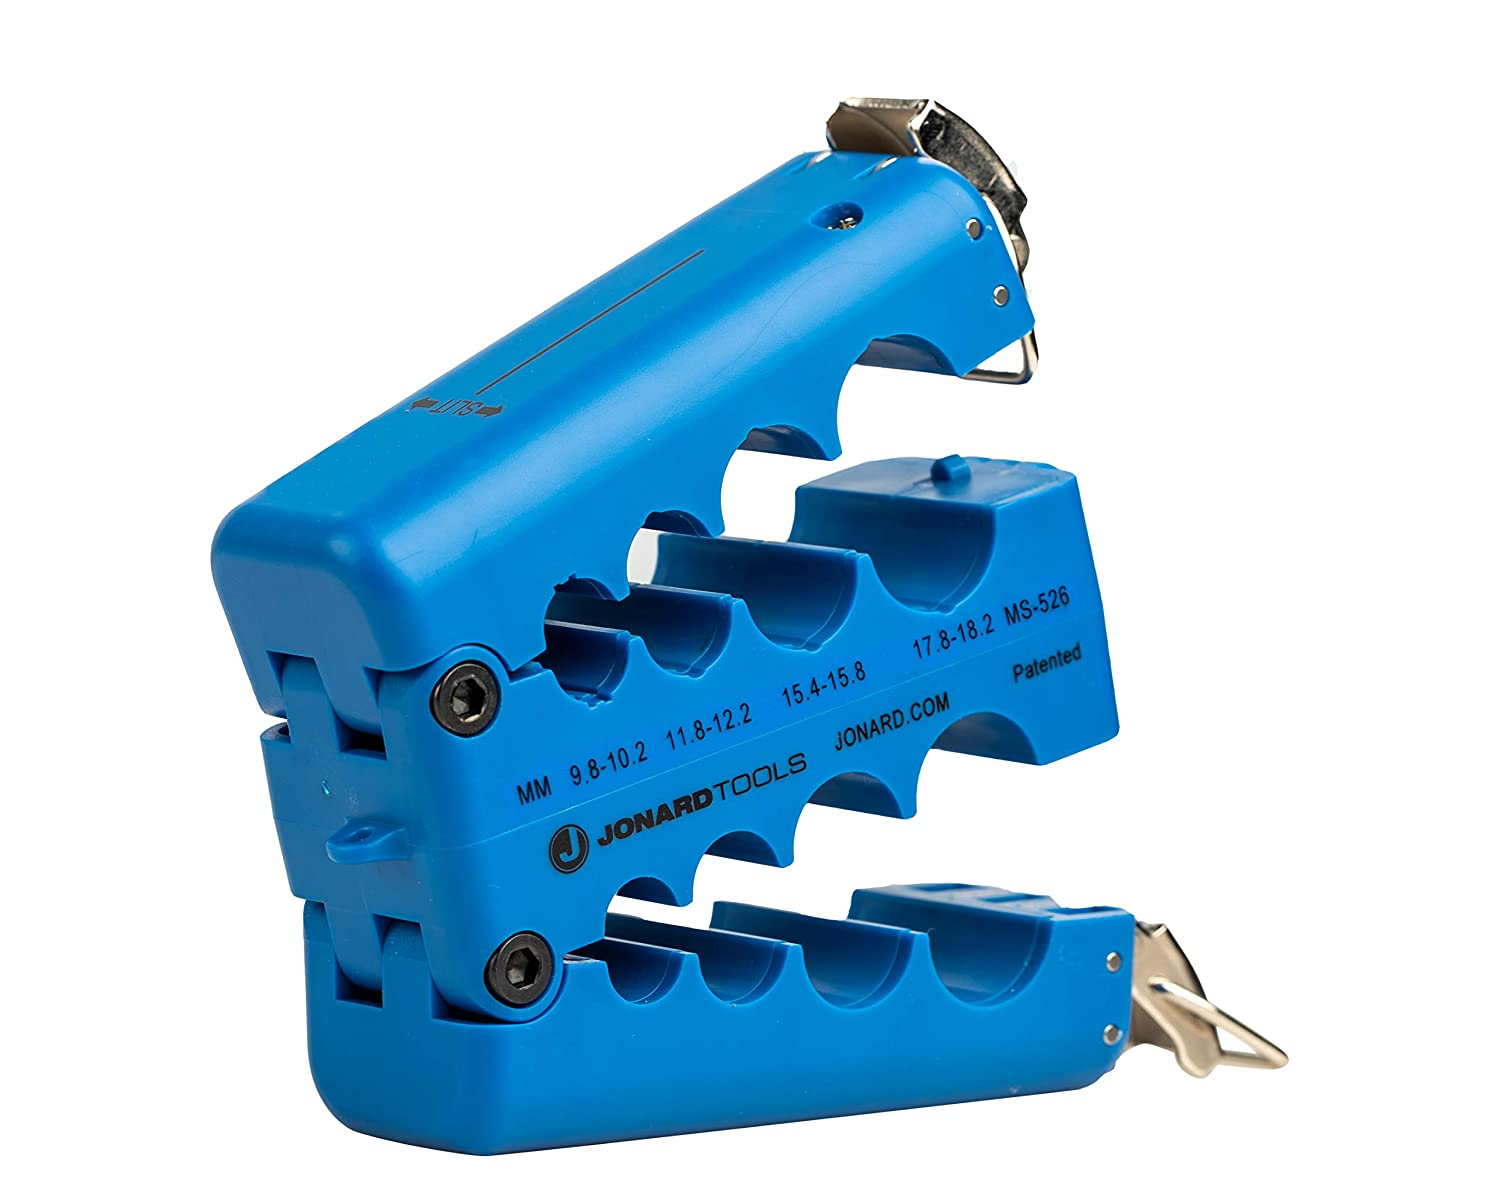 Jonard Tools All items free shipping MS-526 Mid Span Slit mm-18.2 Ring Easy-to-use mm Tool 10.2